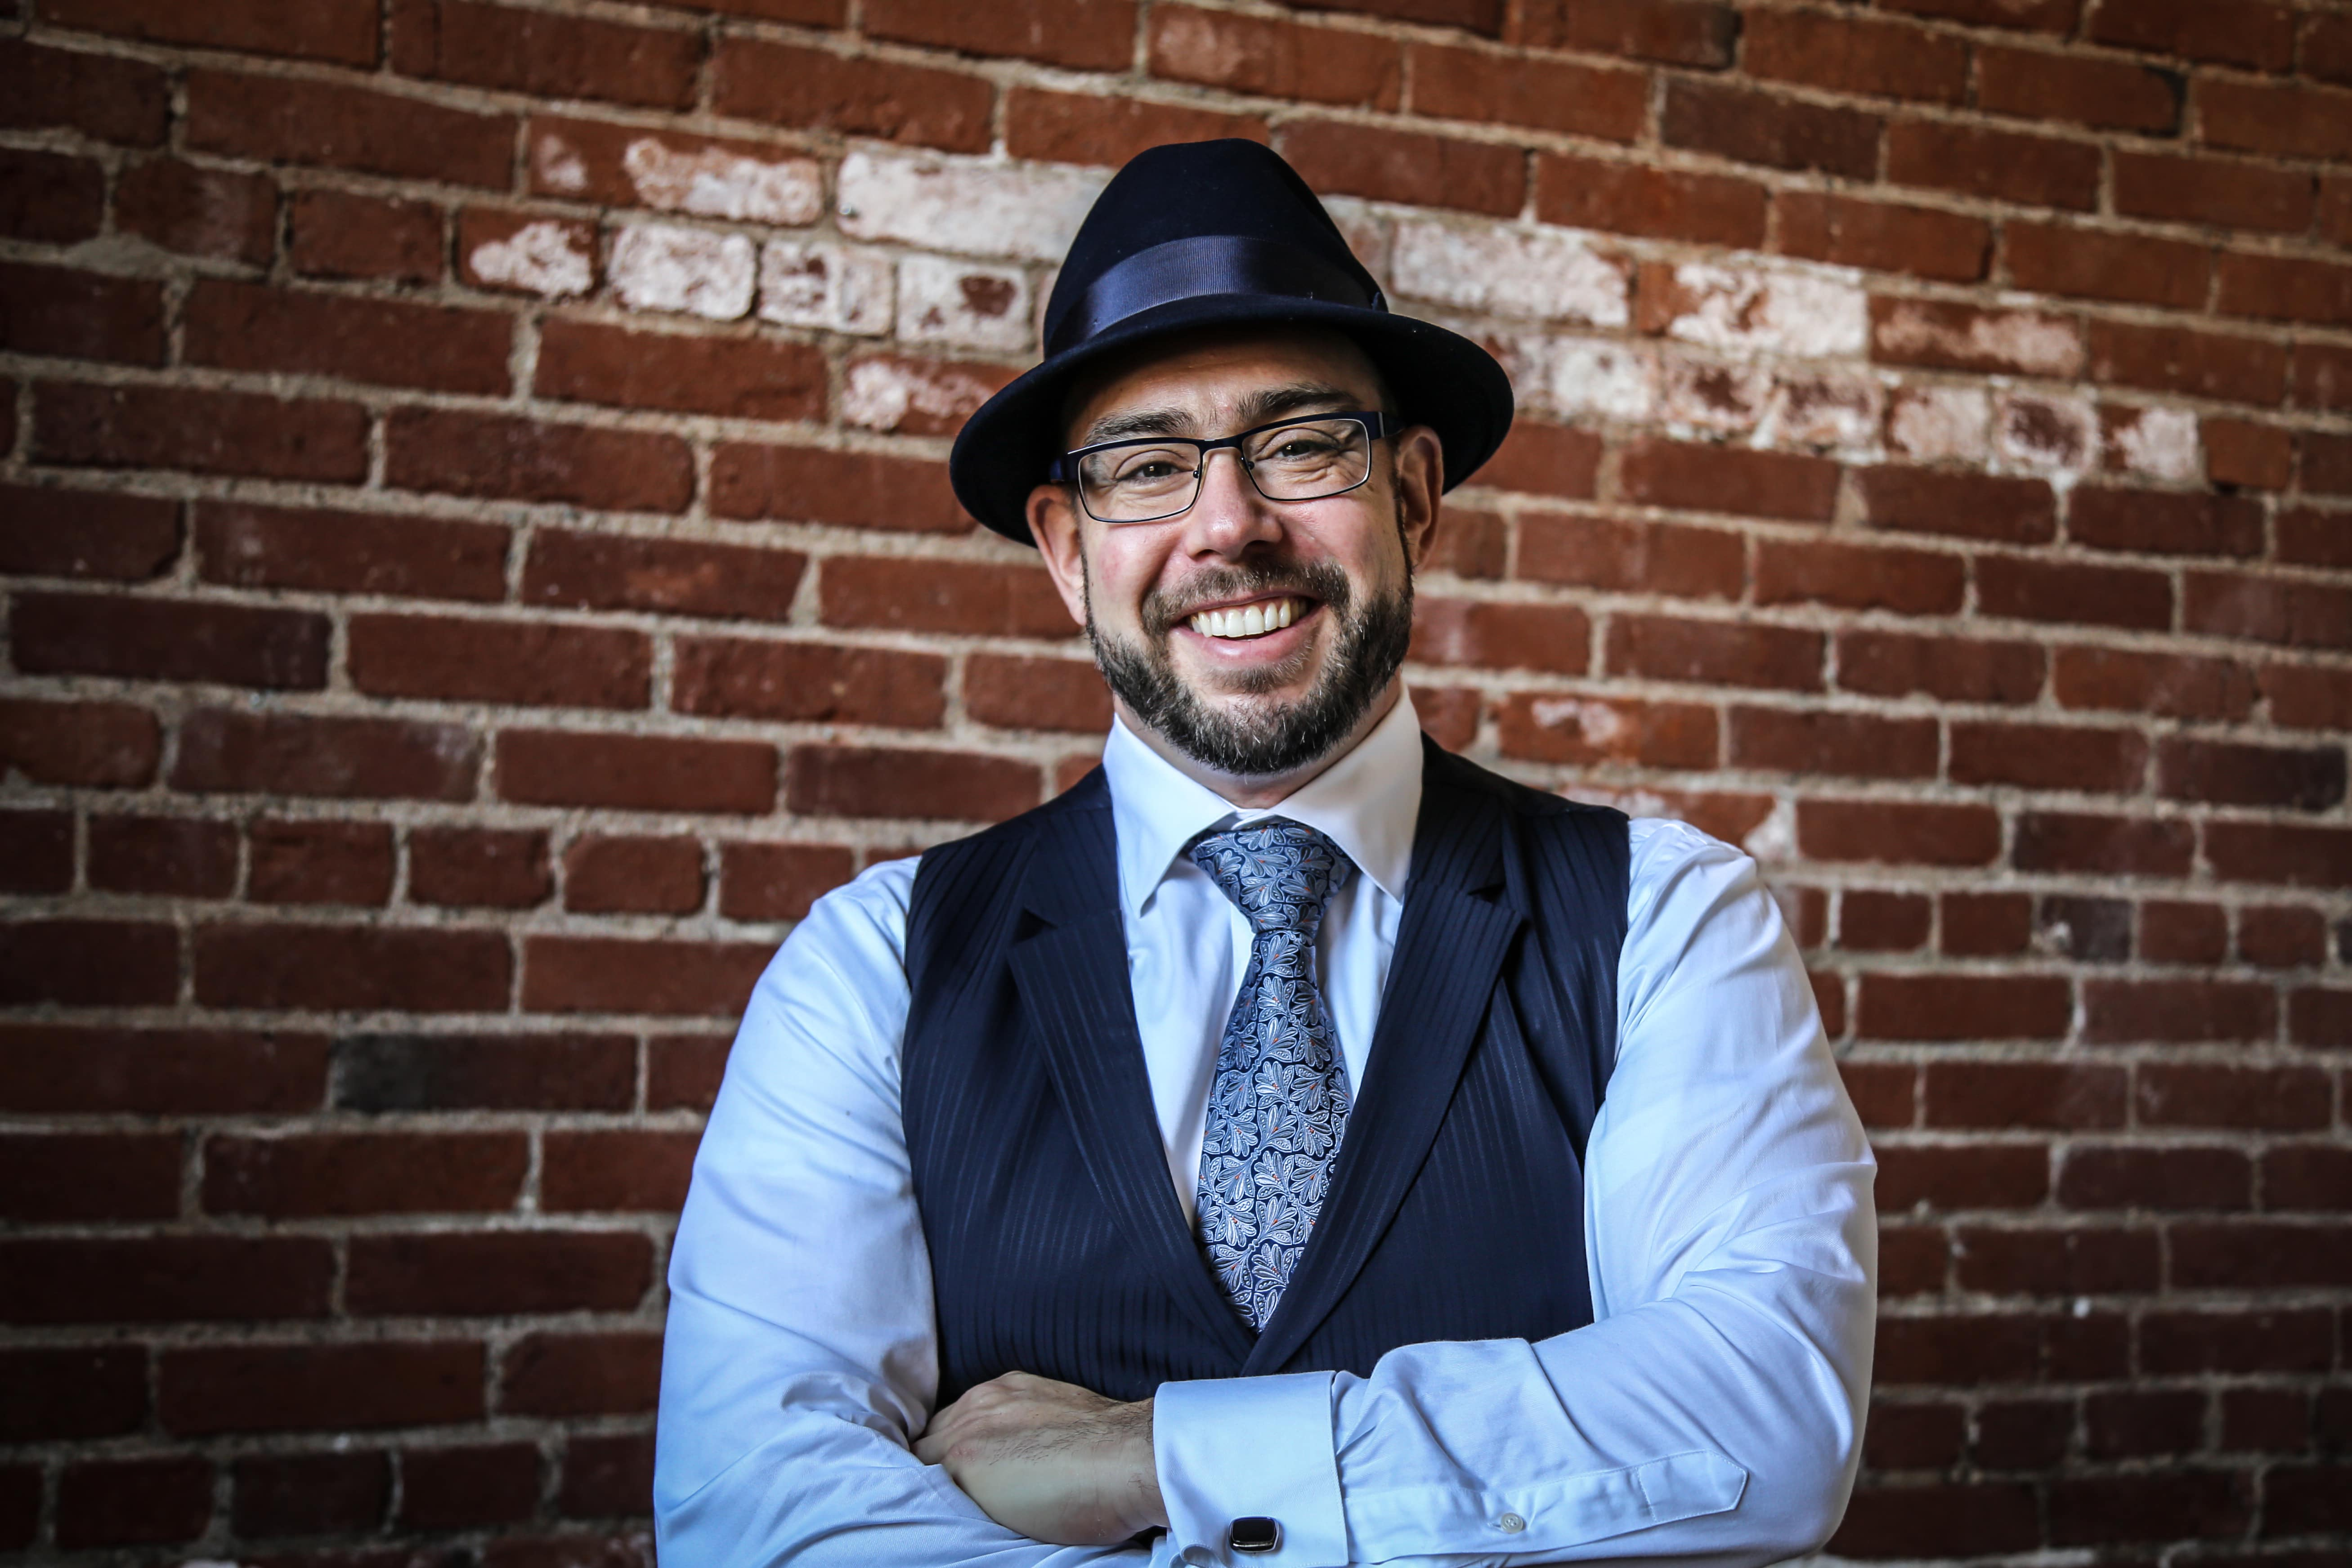 How To Be a Better Leader with Drew Dudely